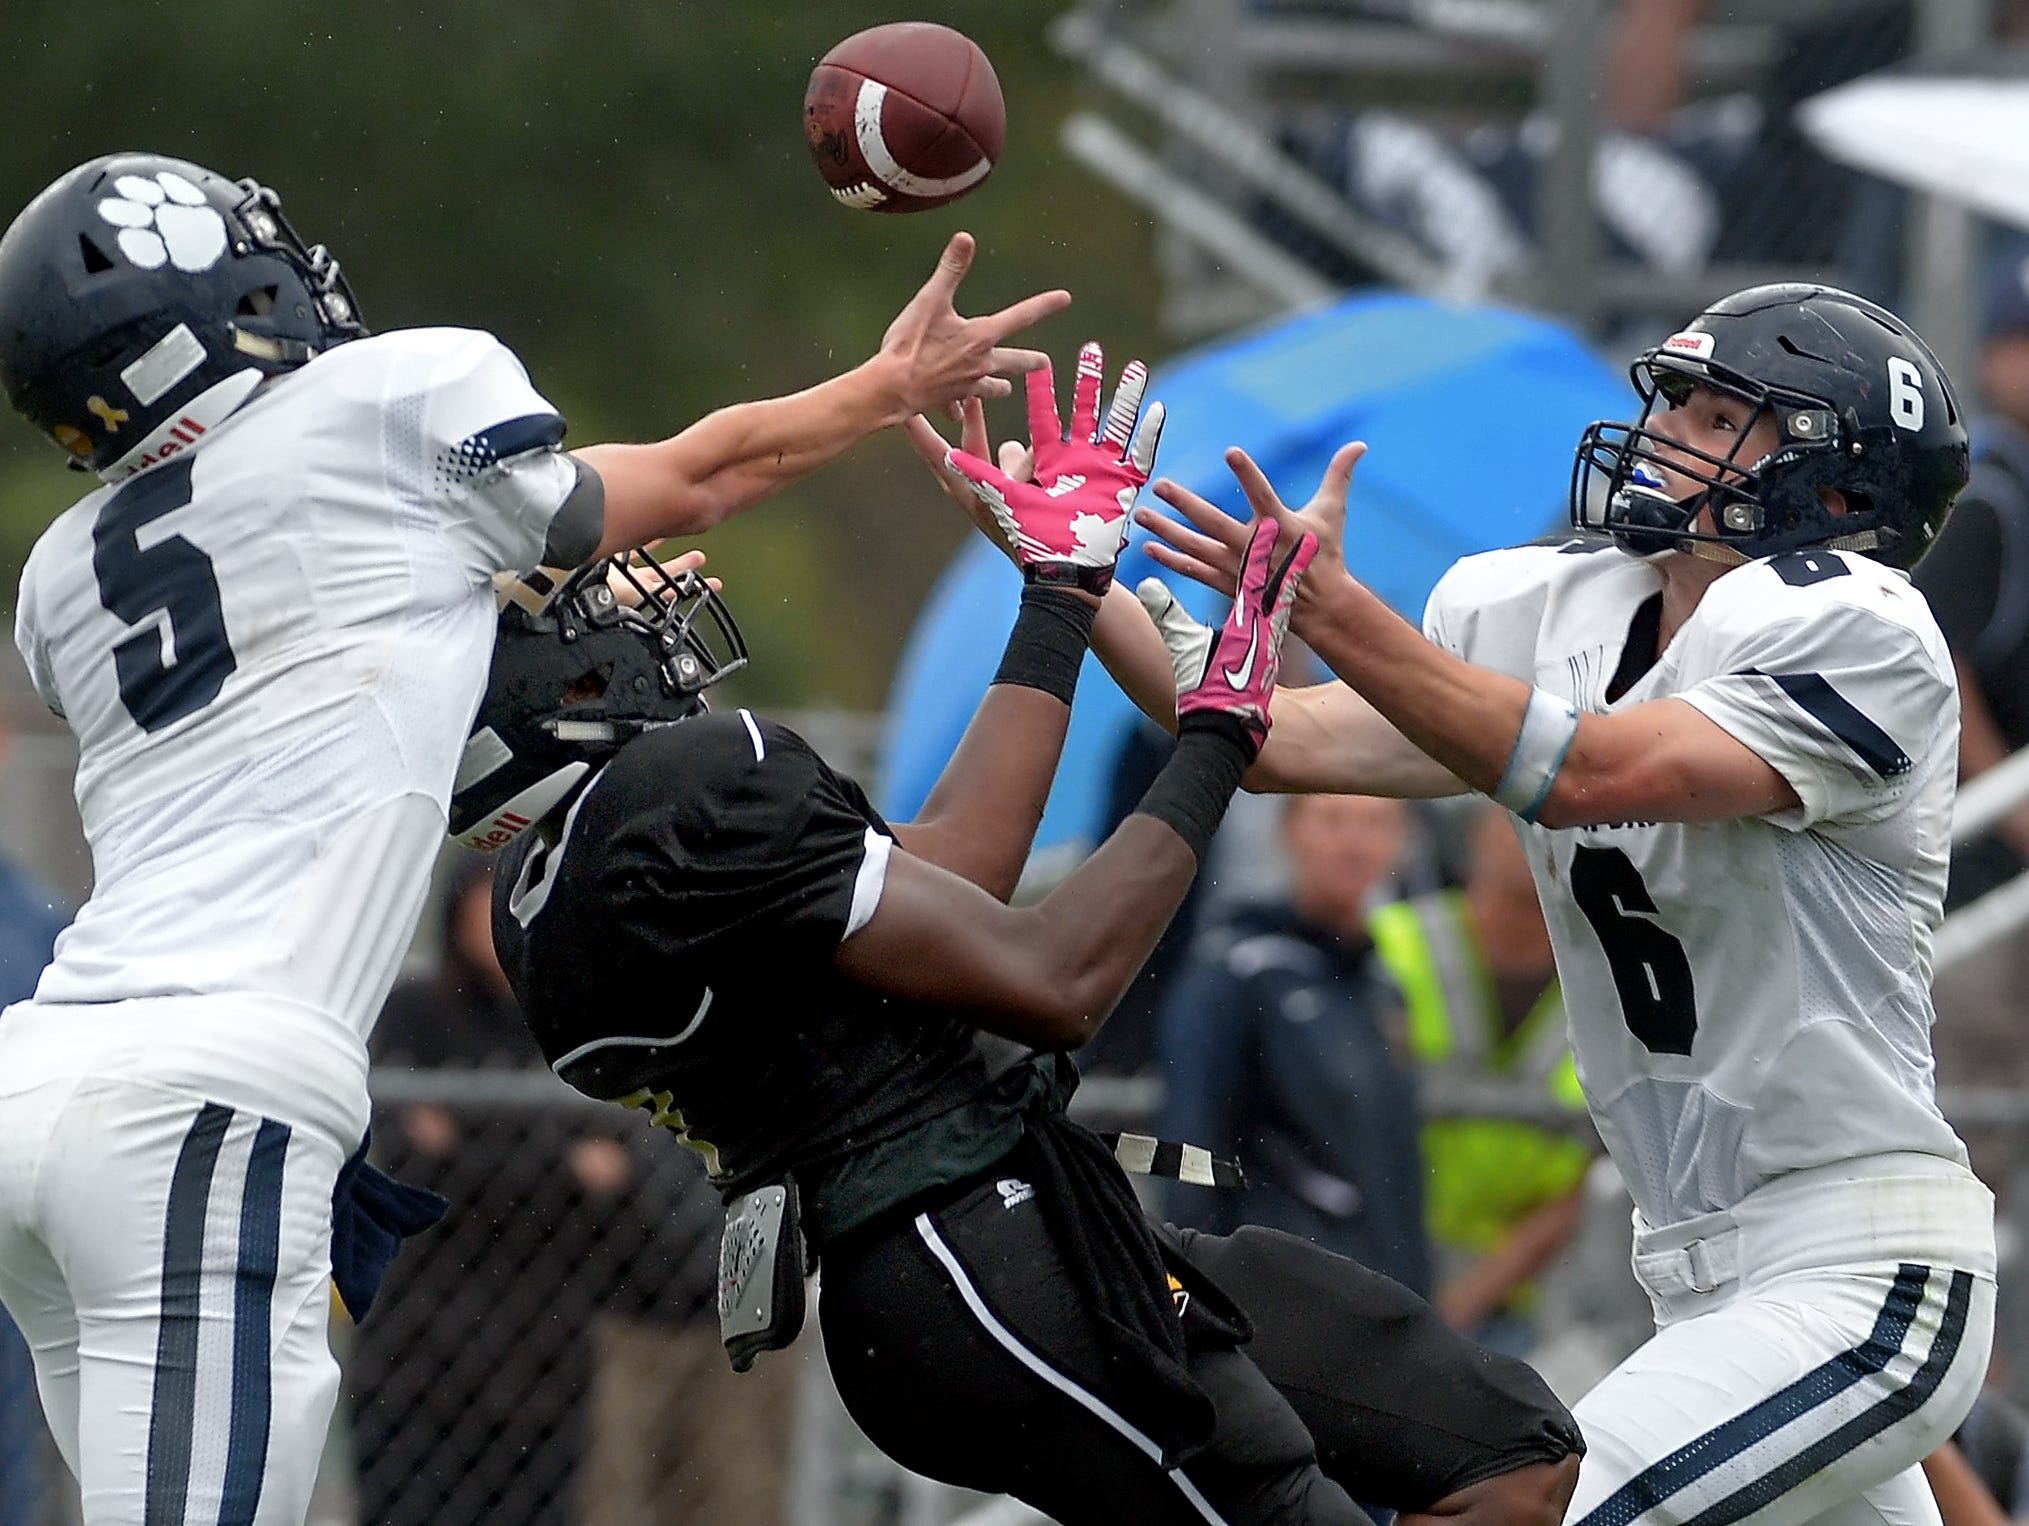 Pittsford's Michael Gigantelli, right at Rush-Henrietta on Sept. 19, made 13 tackles against Fairport a week later..